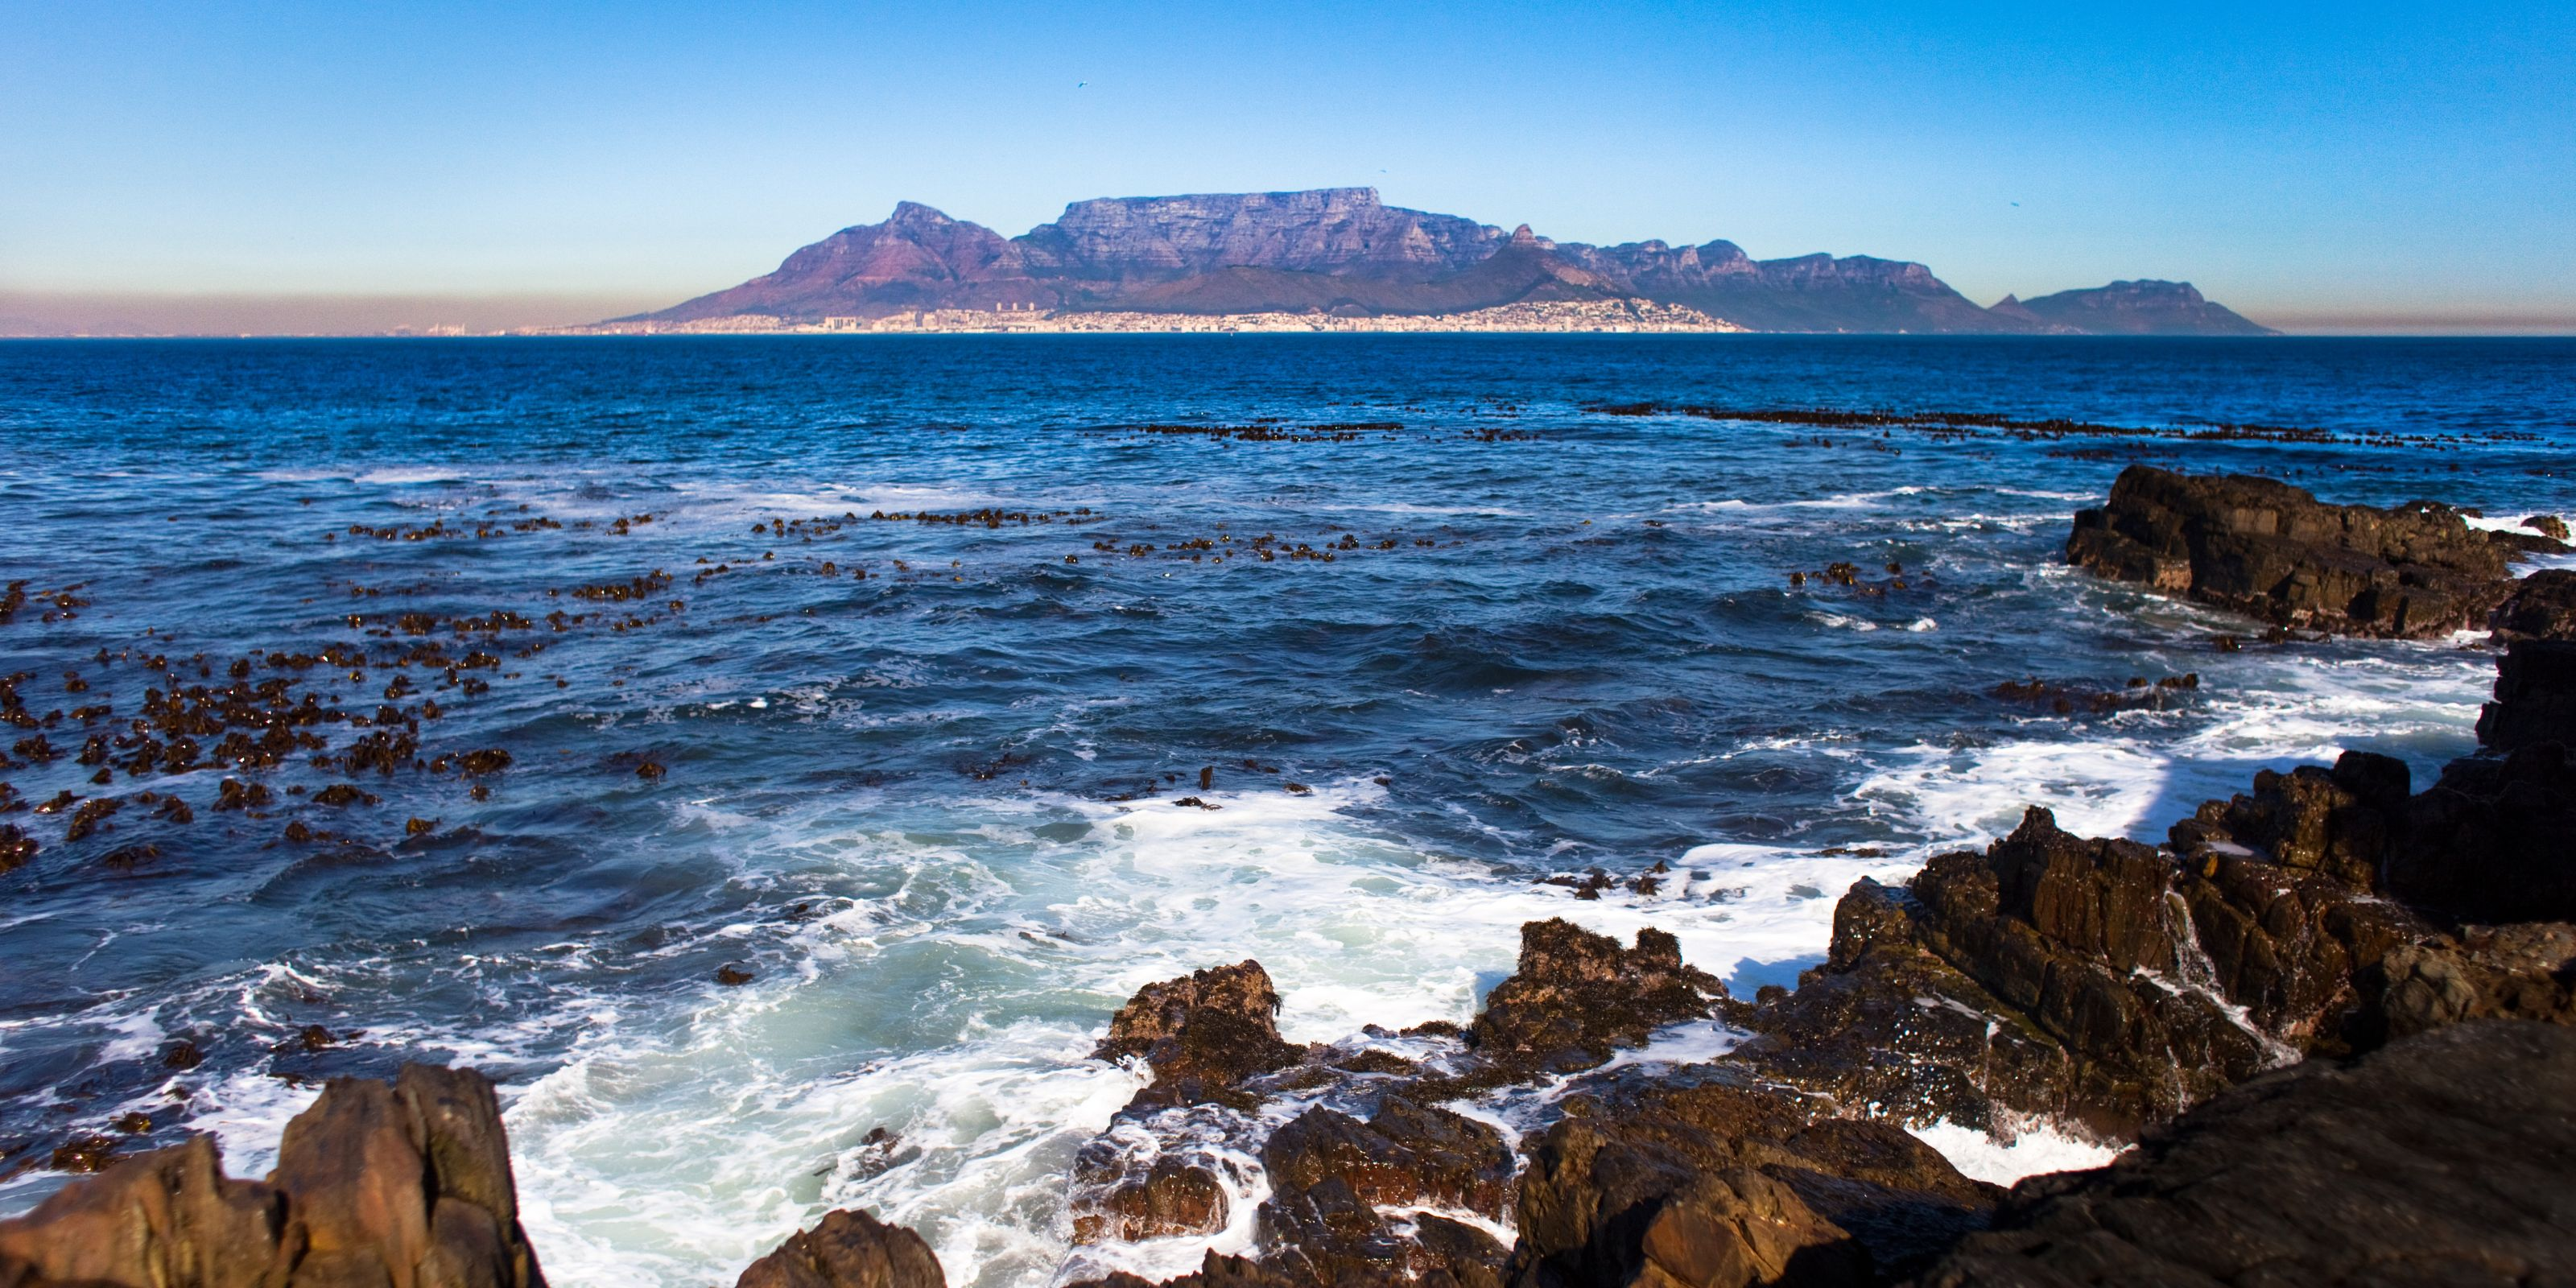 An image of a rocky coastline with another island out to see on the Cape Town SEO agency page.